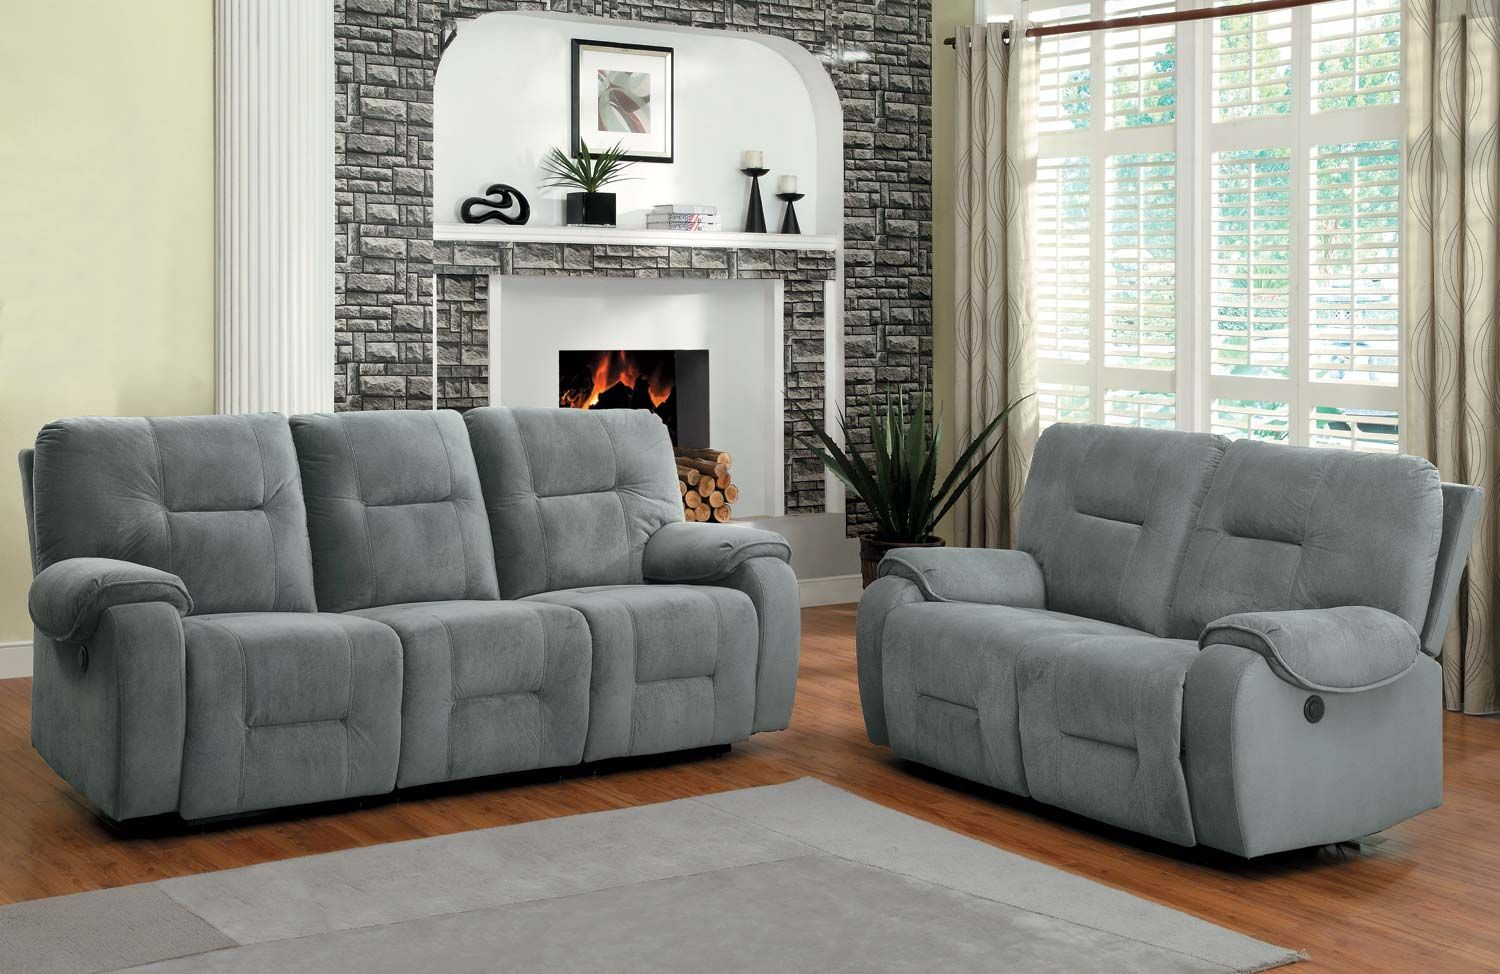 Homelegance Bensonhurst Reclining Sofa Set Blue Grey Textured Micro Fiber